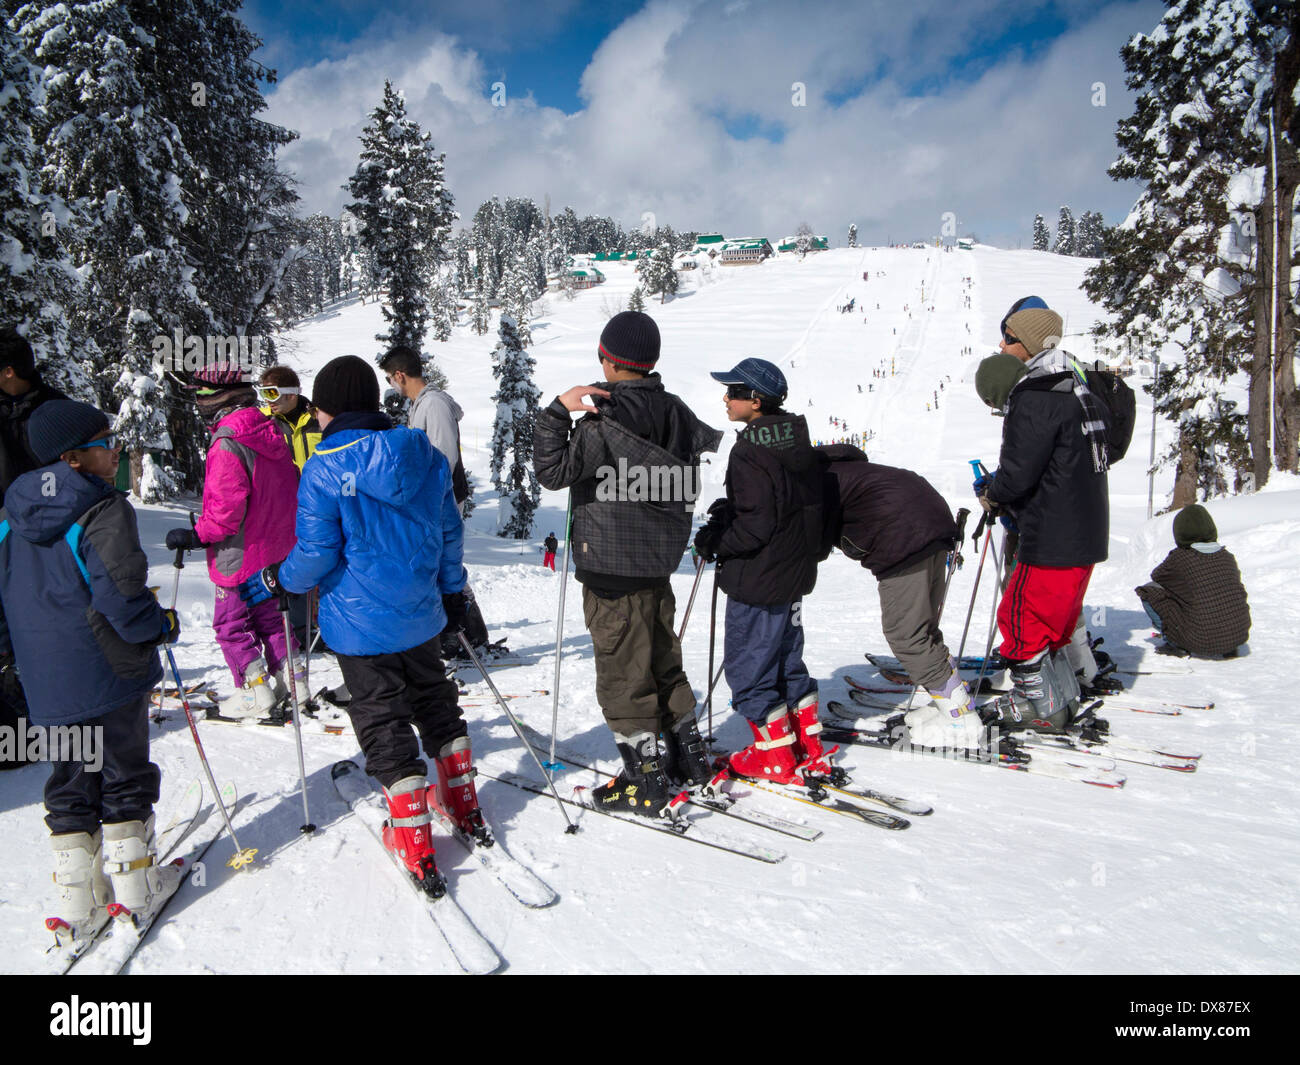 India, Kashmir, Gulmarg, Himalayan Ski Resort, nursery slopes after heavy snowfall - Stock Image